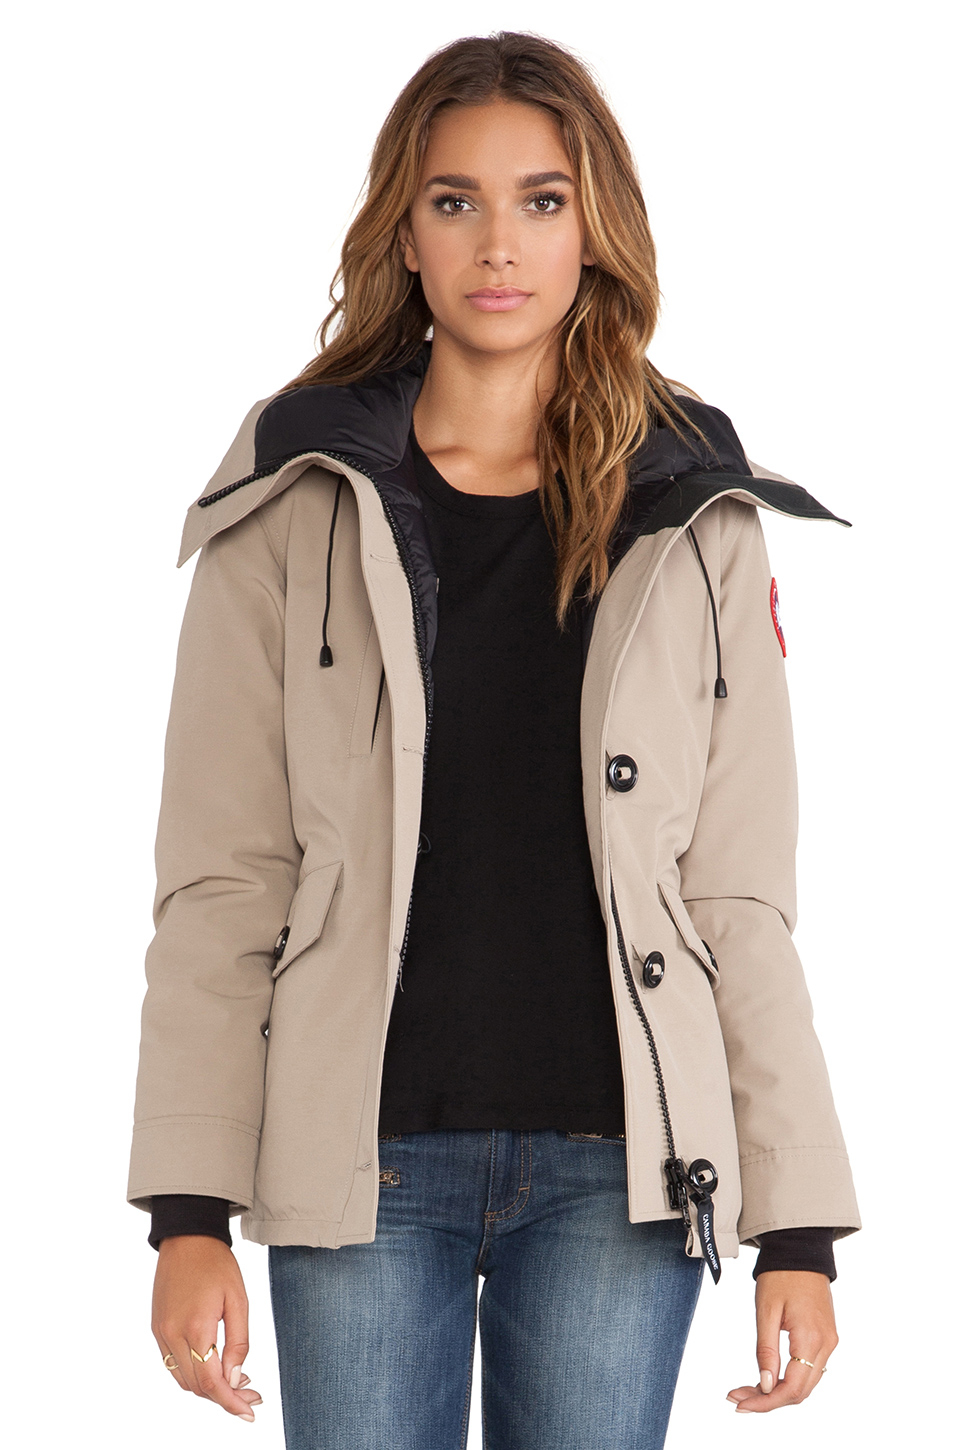 Lyst - Canada Goose Rideau Parka in Brown 84aed8202d99